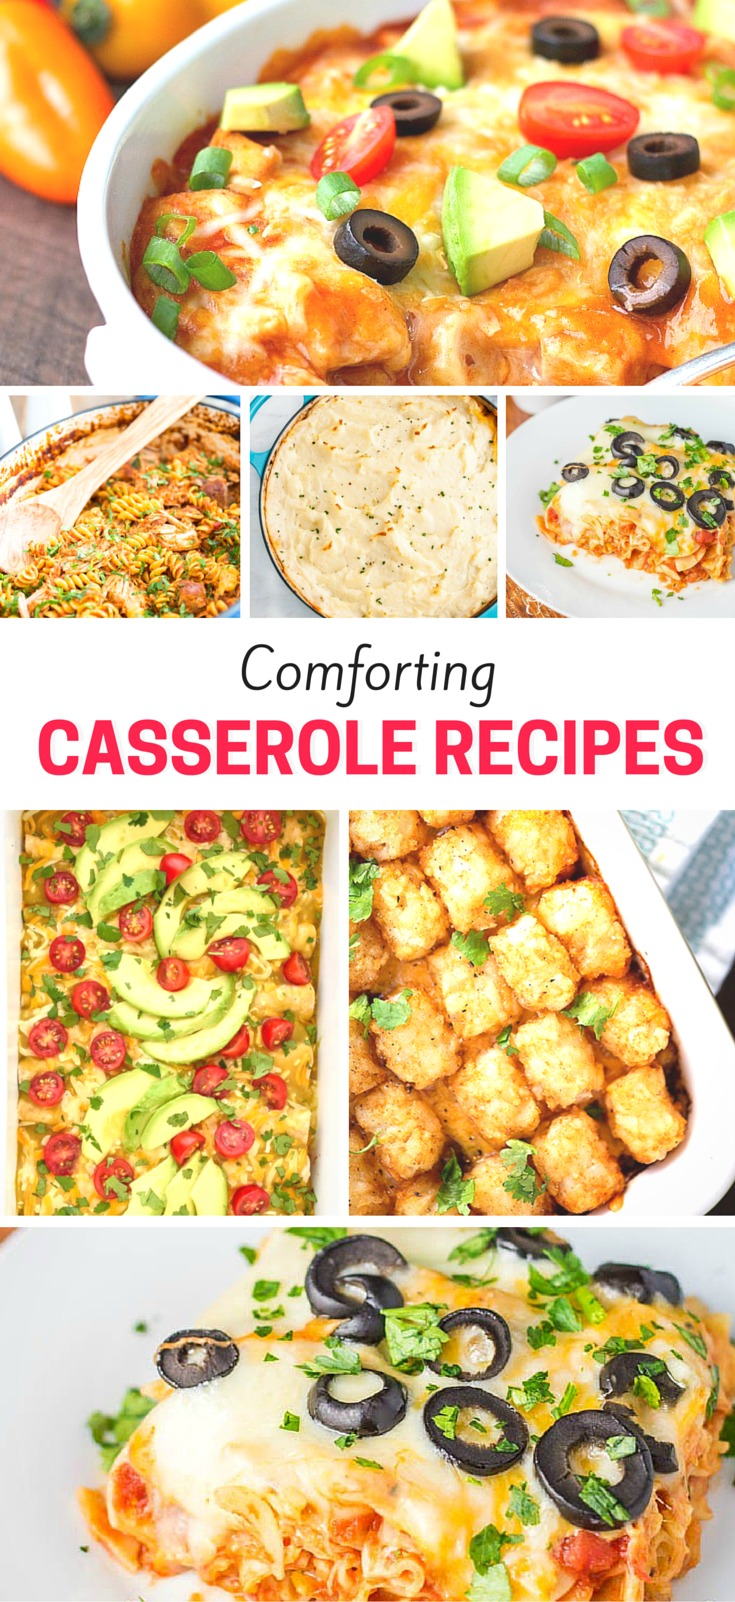 There is nothing better than a nice warm comforting casserole for dinner!! These are perfect for enjoying with the family at dinner time.